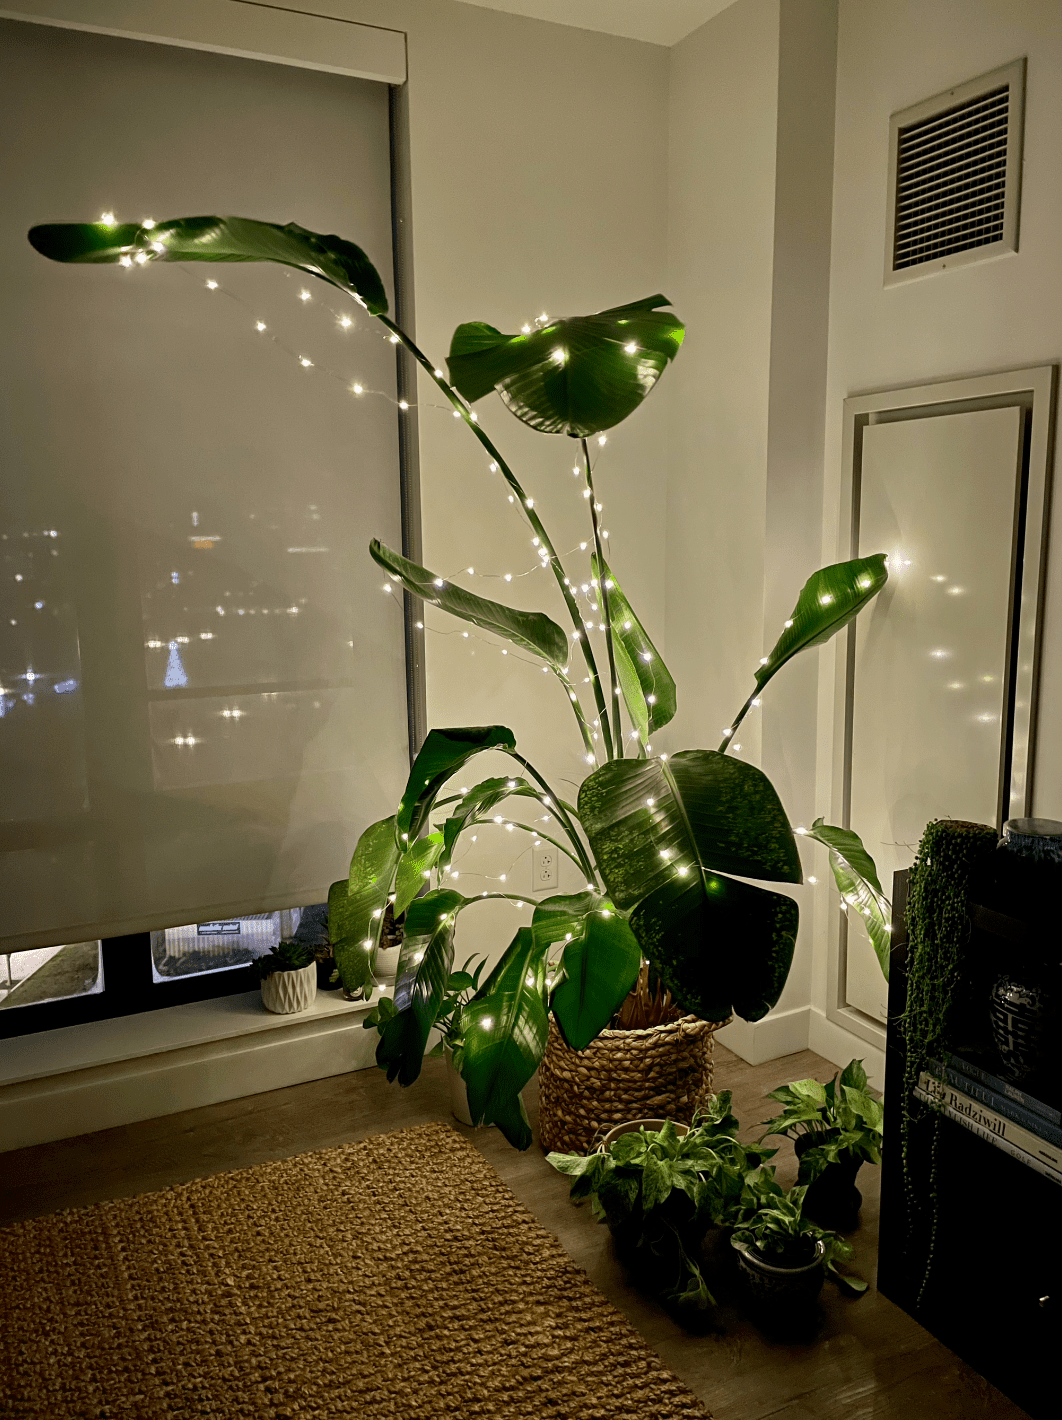 plant decorated with lights for Christmas